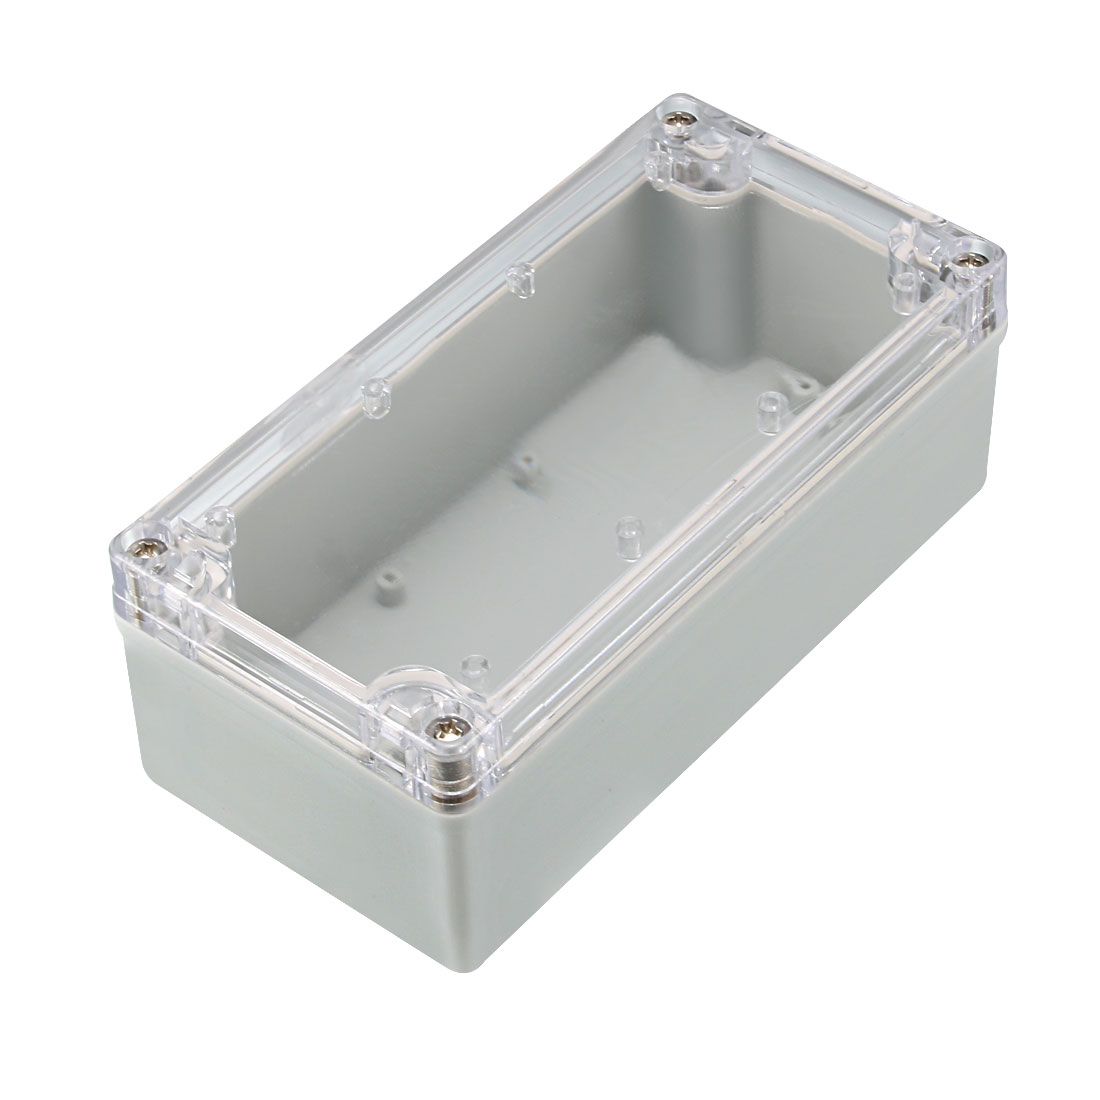 80x160x55mm Electronic ABS Plastic DIY Junction Box Enclosure Case w Clear Cover